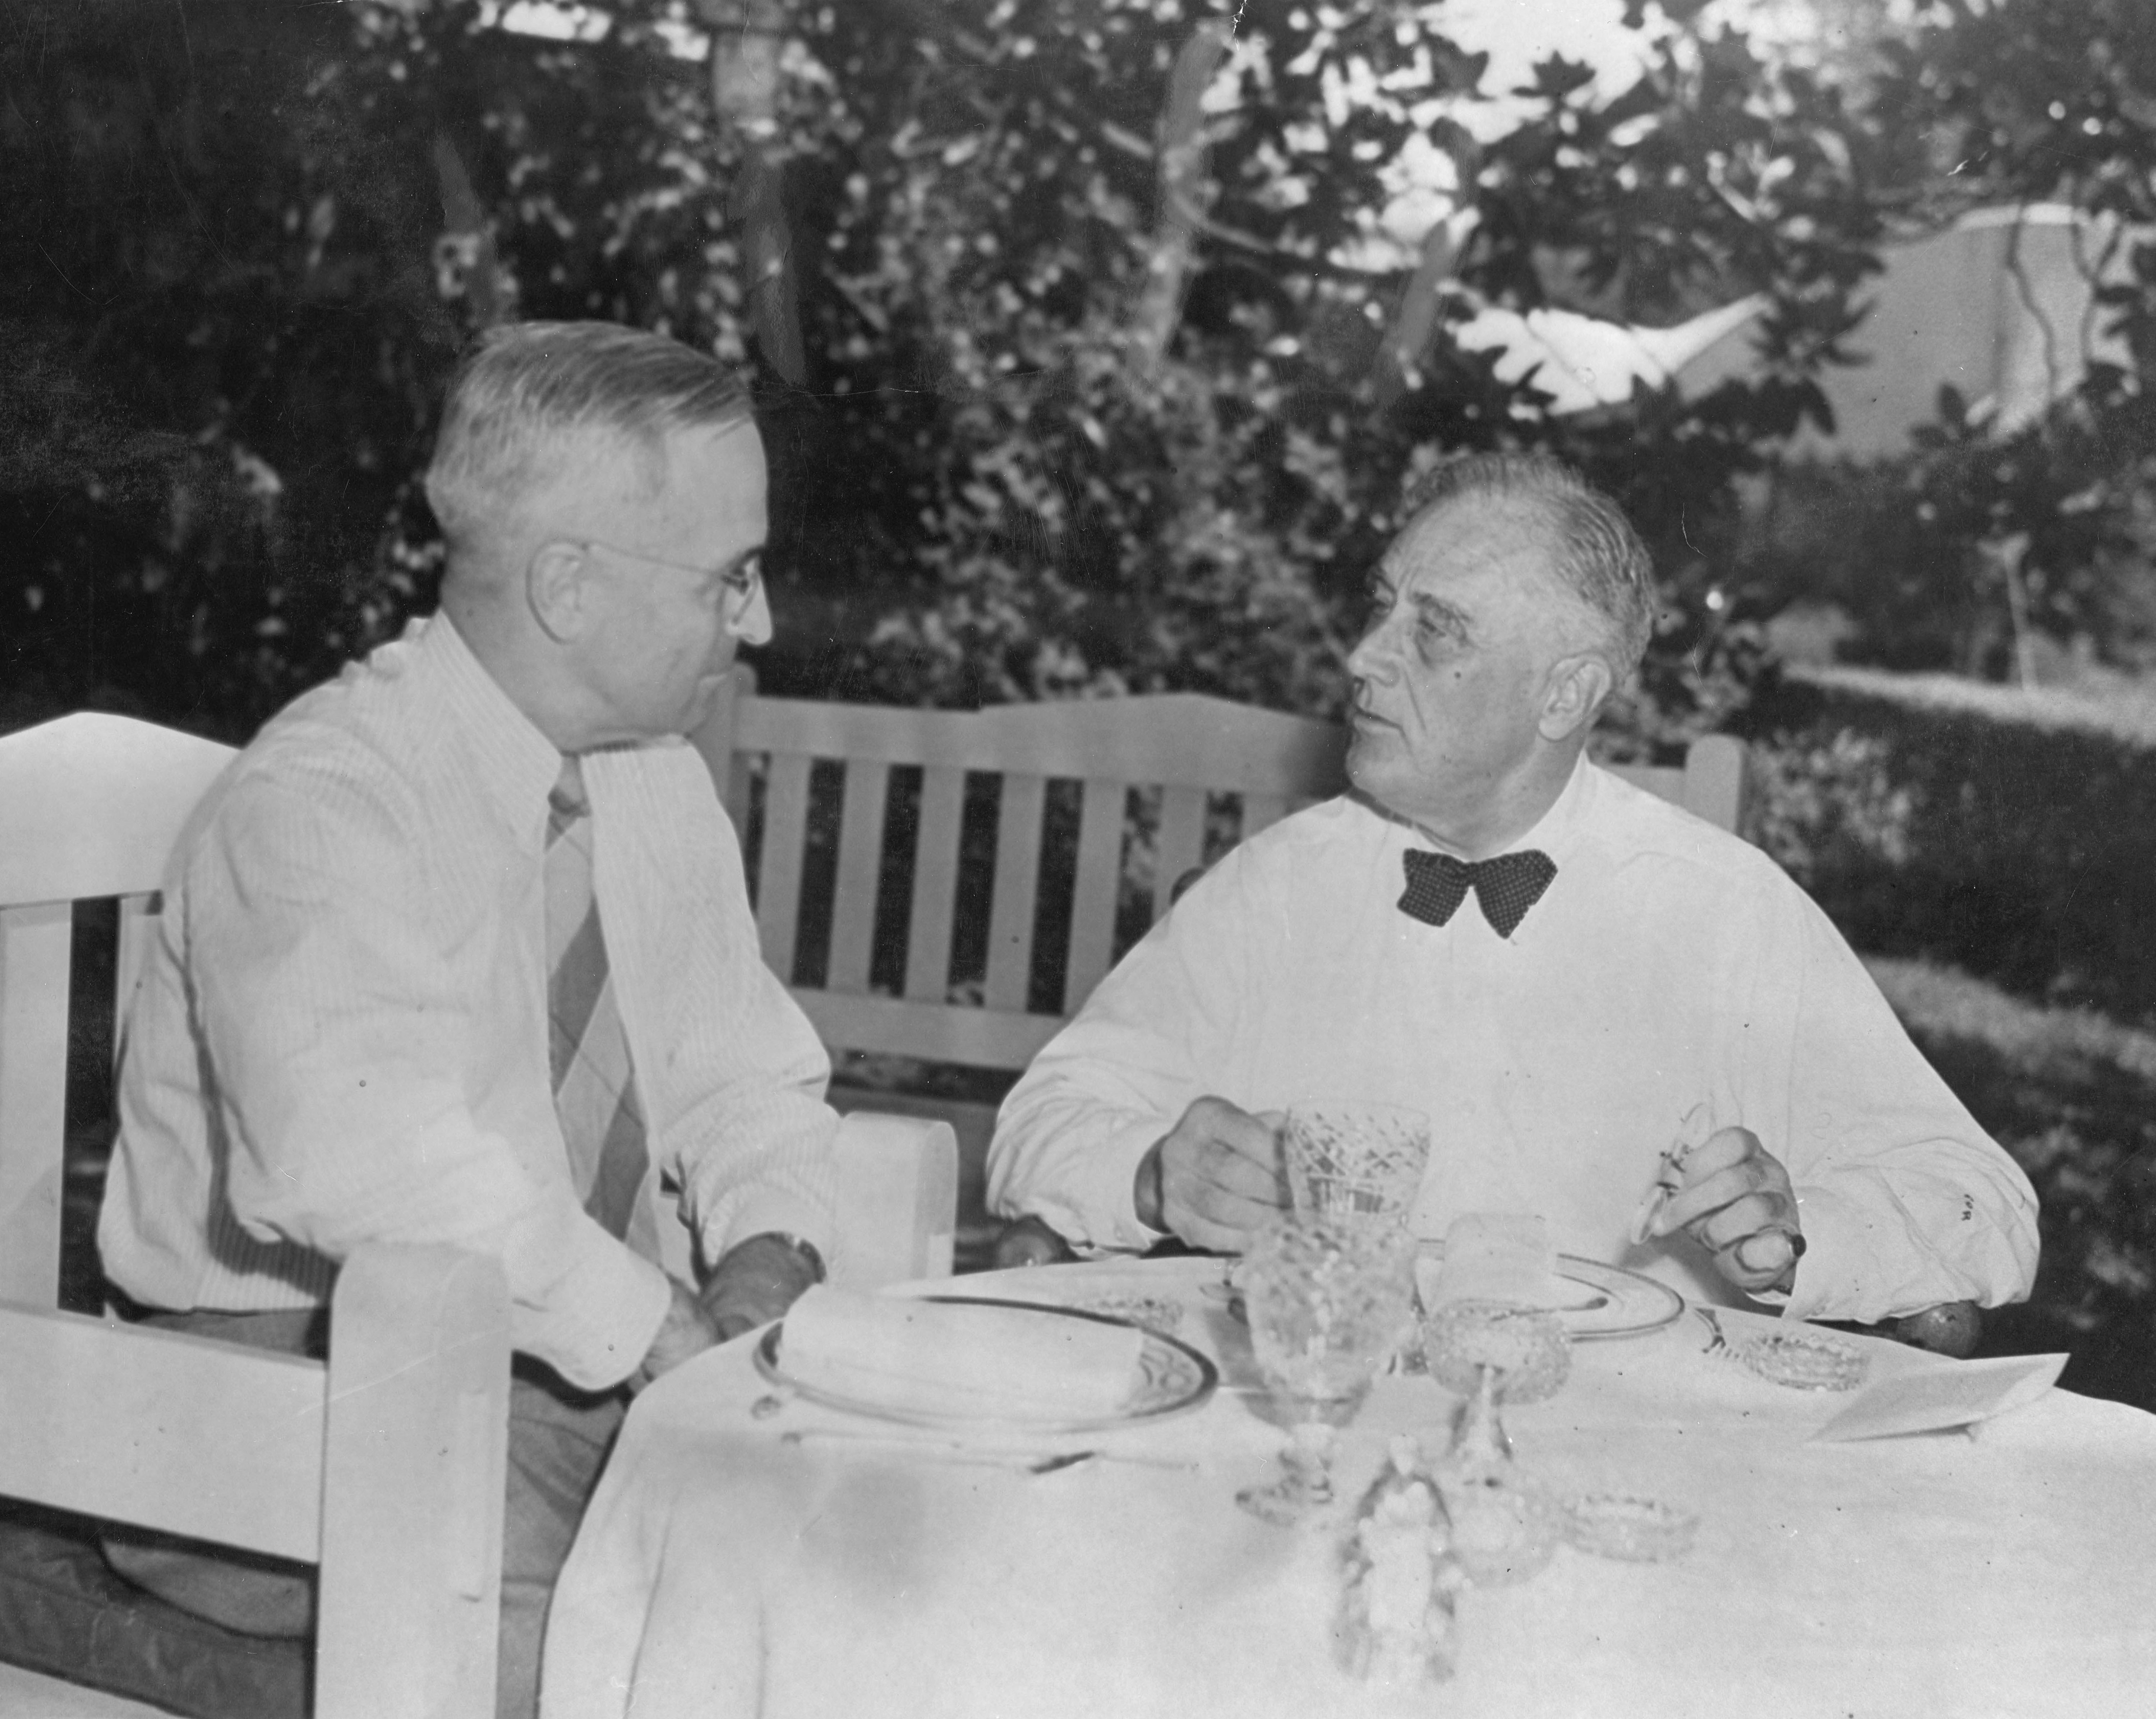 Senator Harry S. Truman of Missouri, Democratic vice presidential candidate is shown having lunch with President Roosevelt on the south lawn of the White House, August 18, 1944. NPx 61-504.